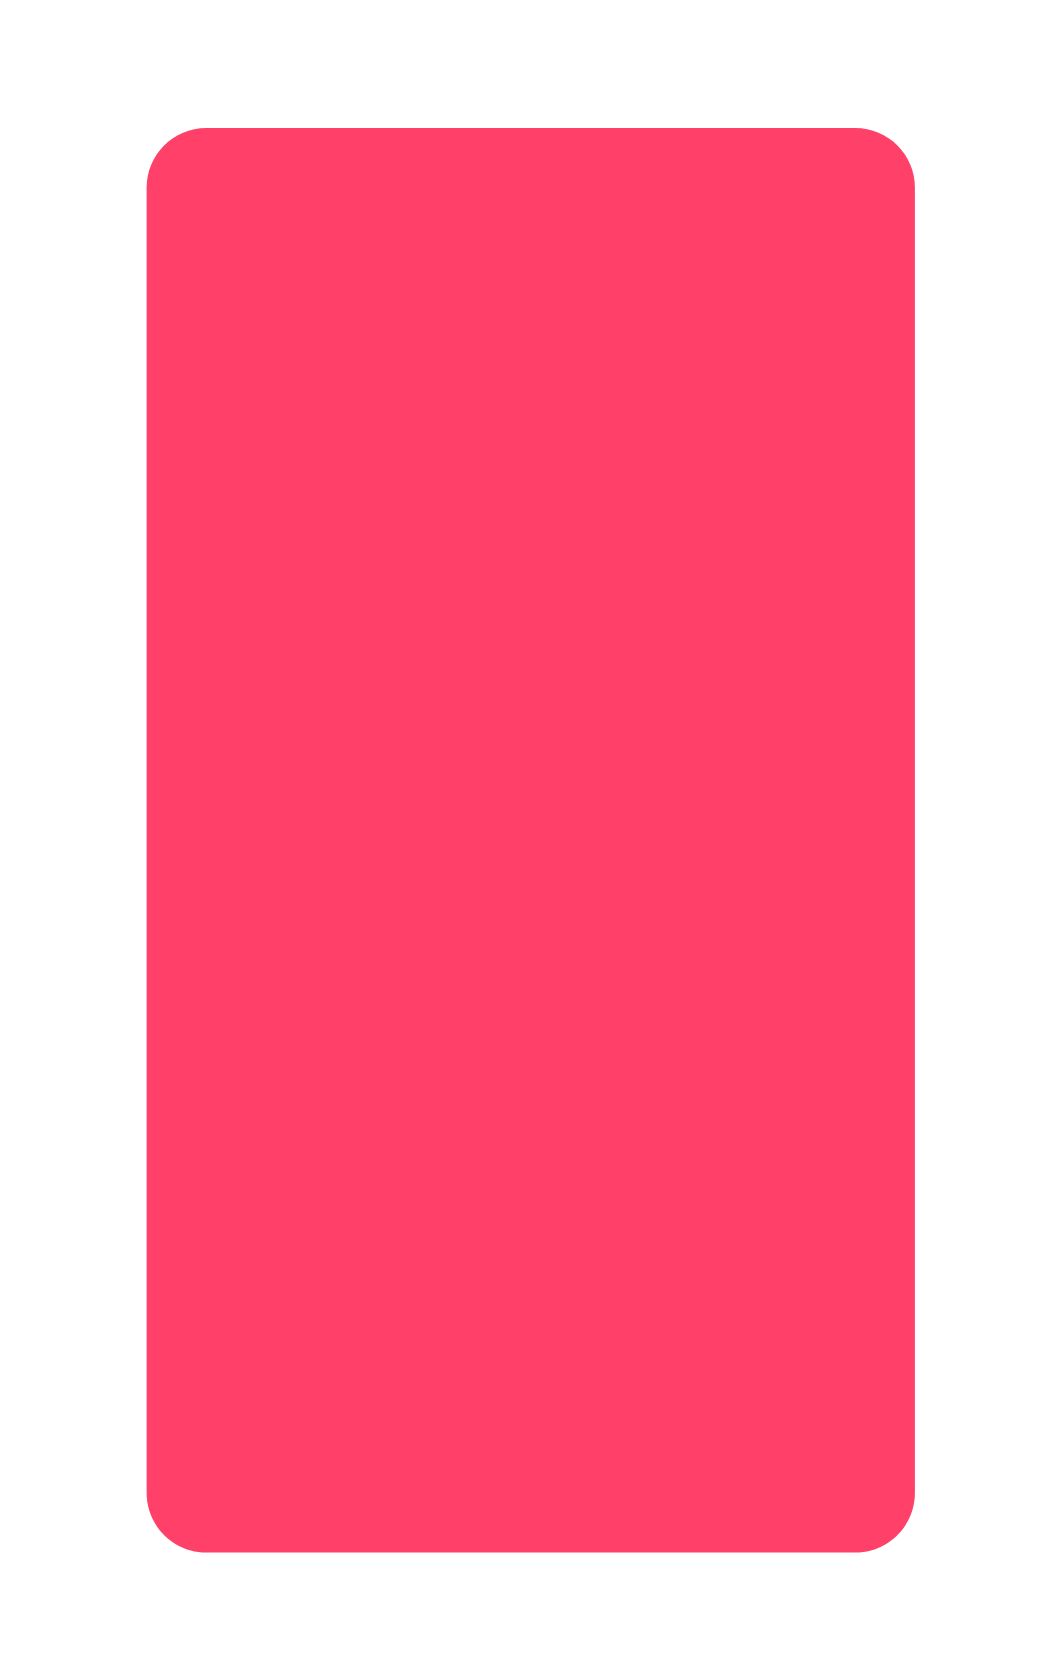 Publift pink slider block image